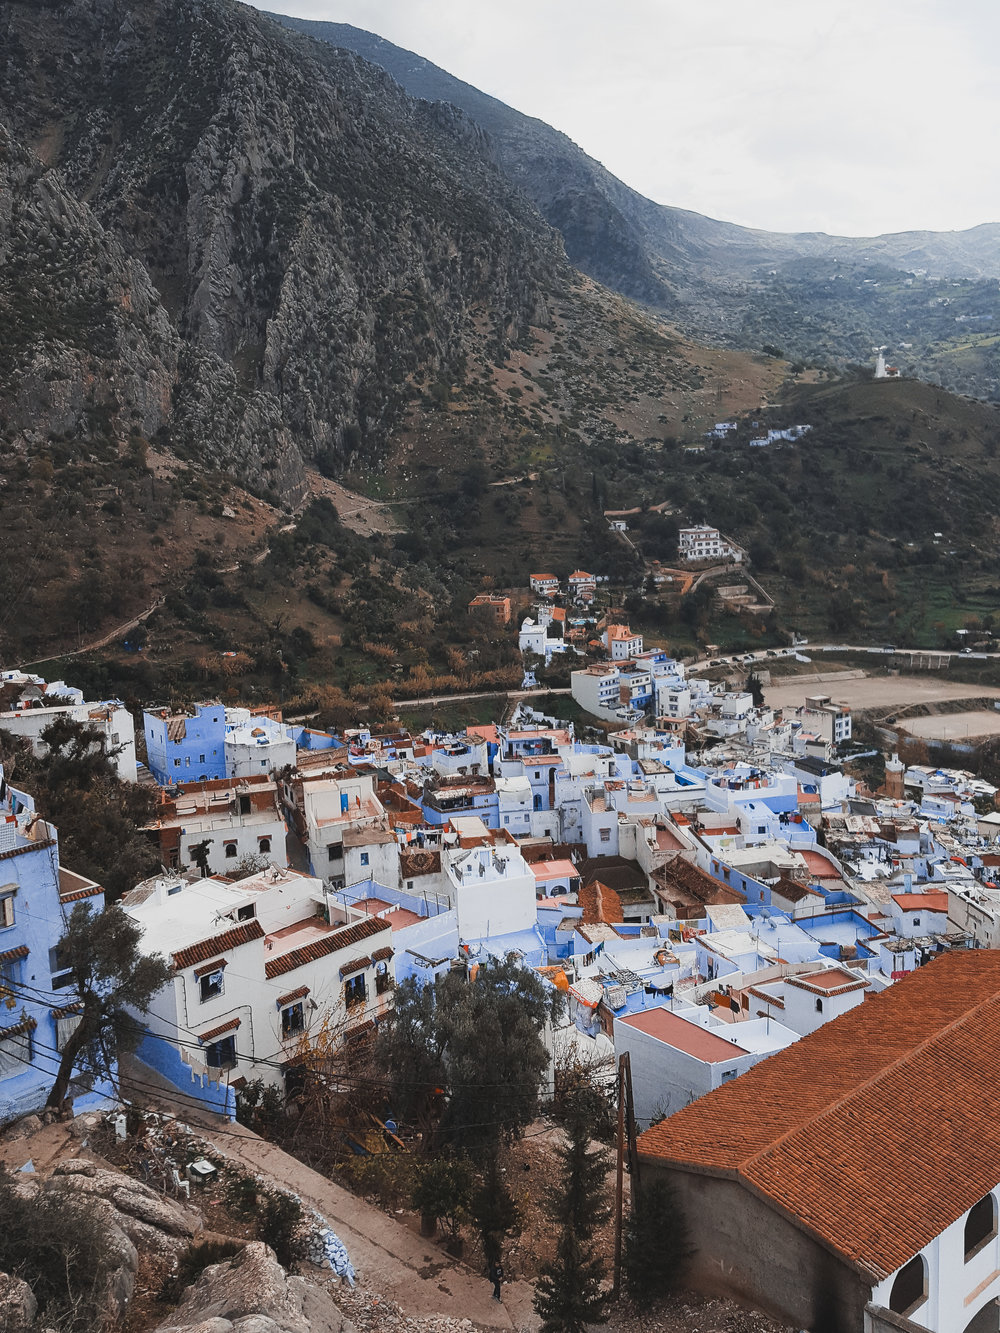 The view from the top of the hill in Chefchaouen